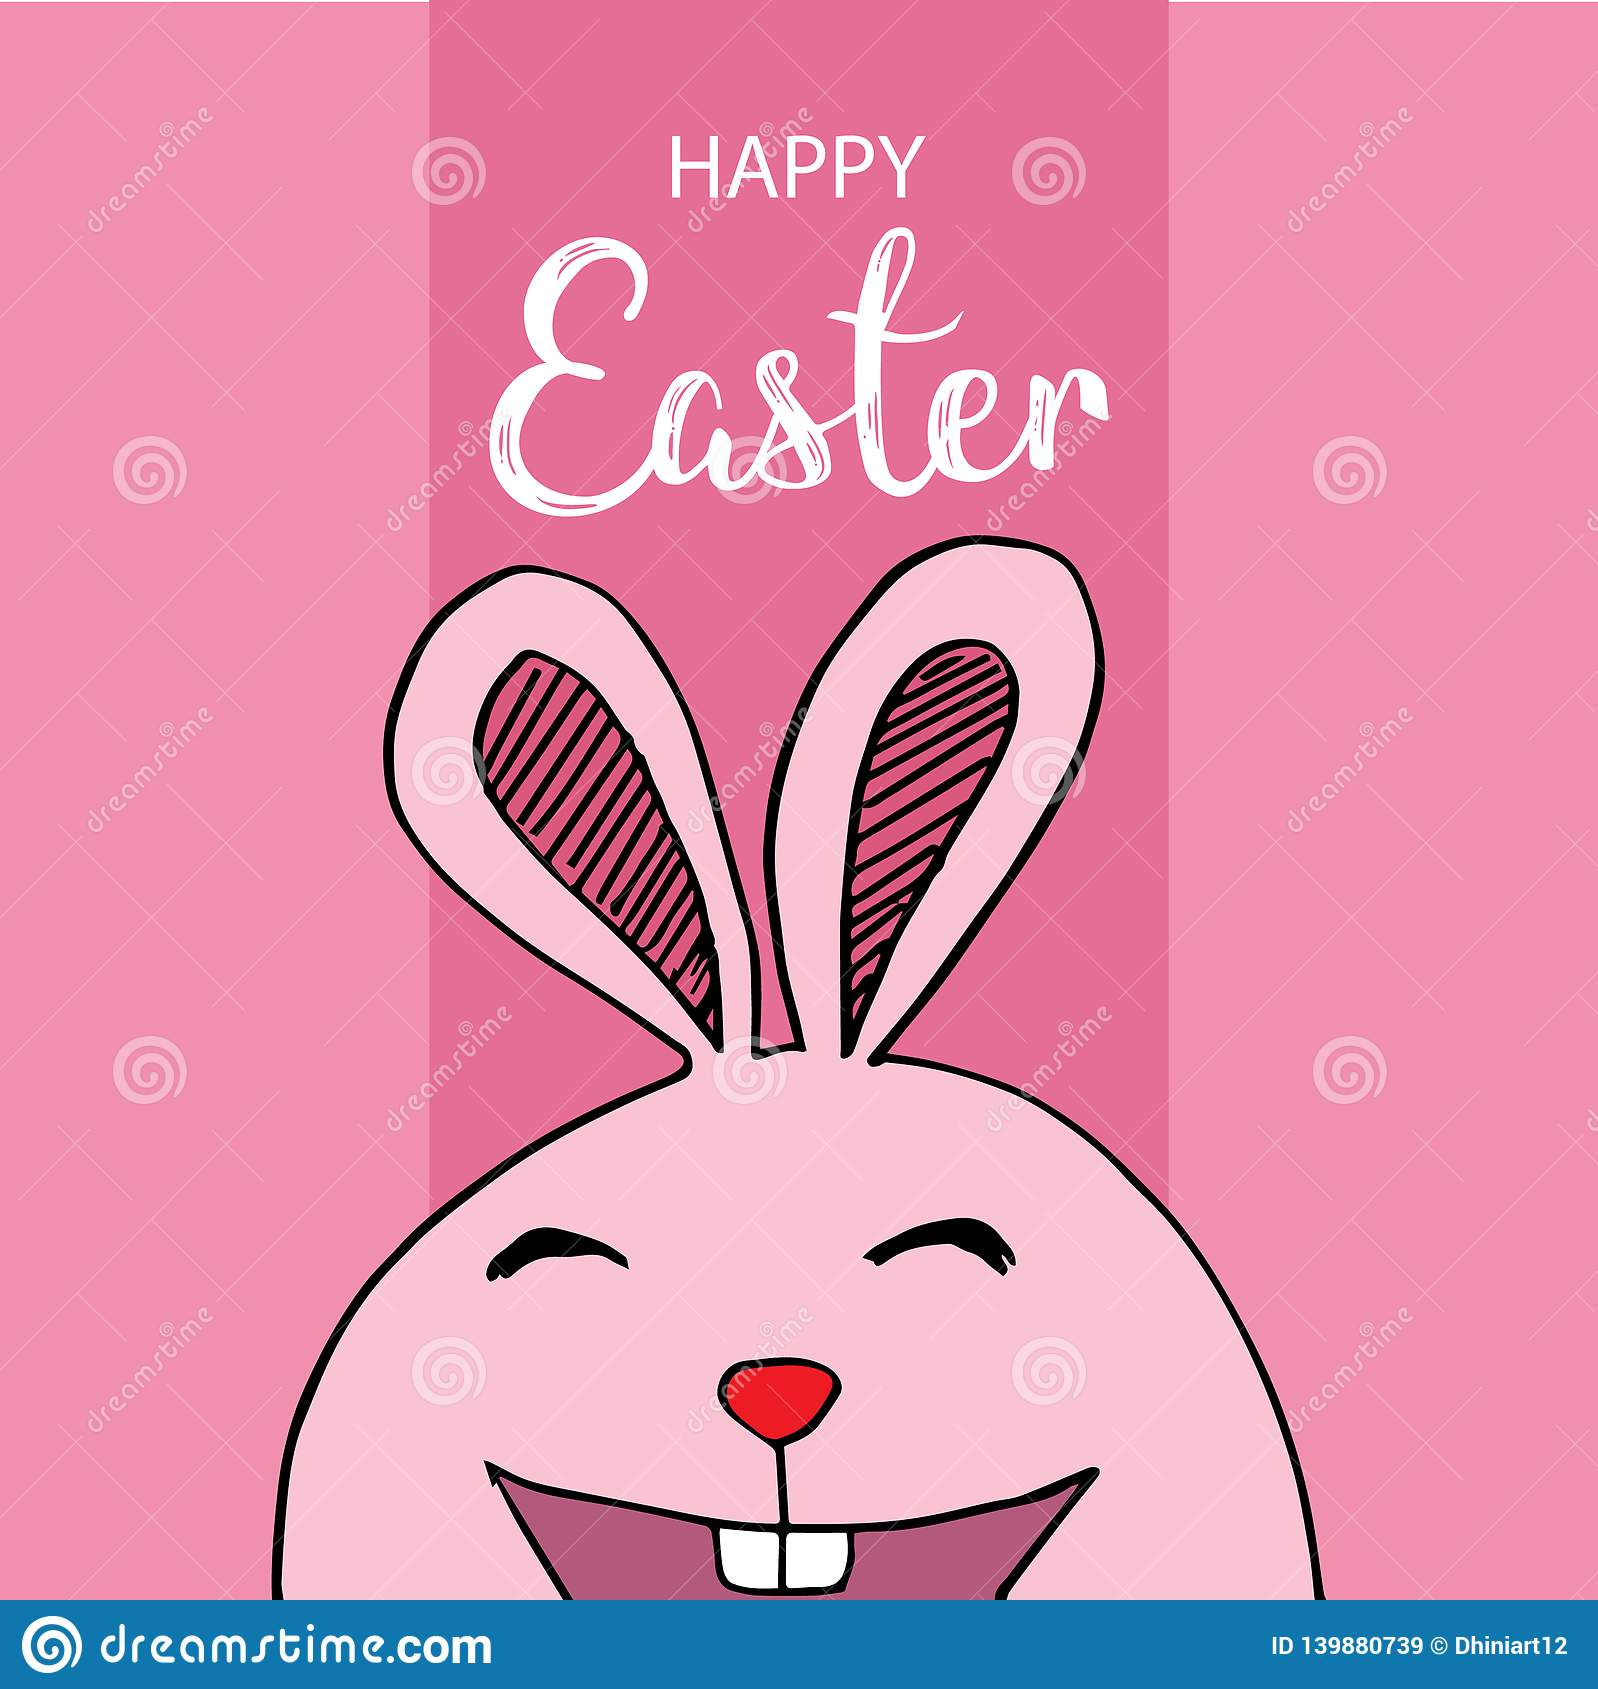 headband clipart easter bunny ear pencil and in color.html